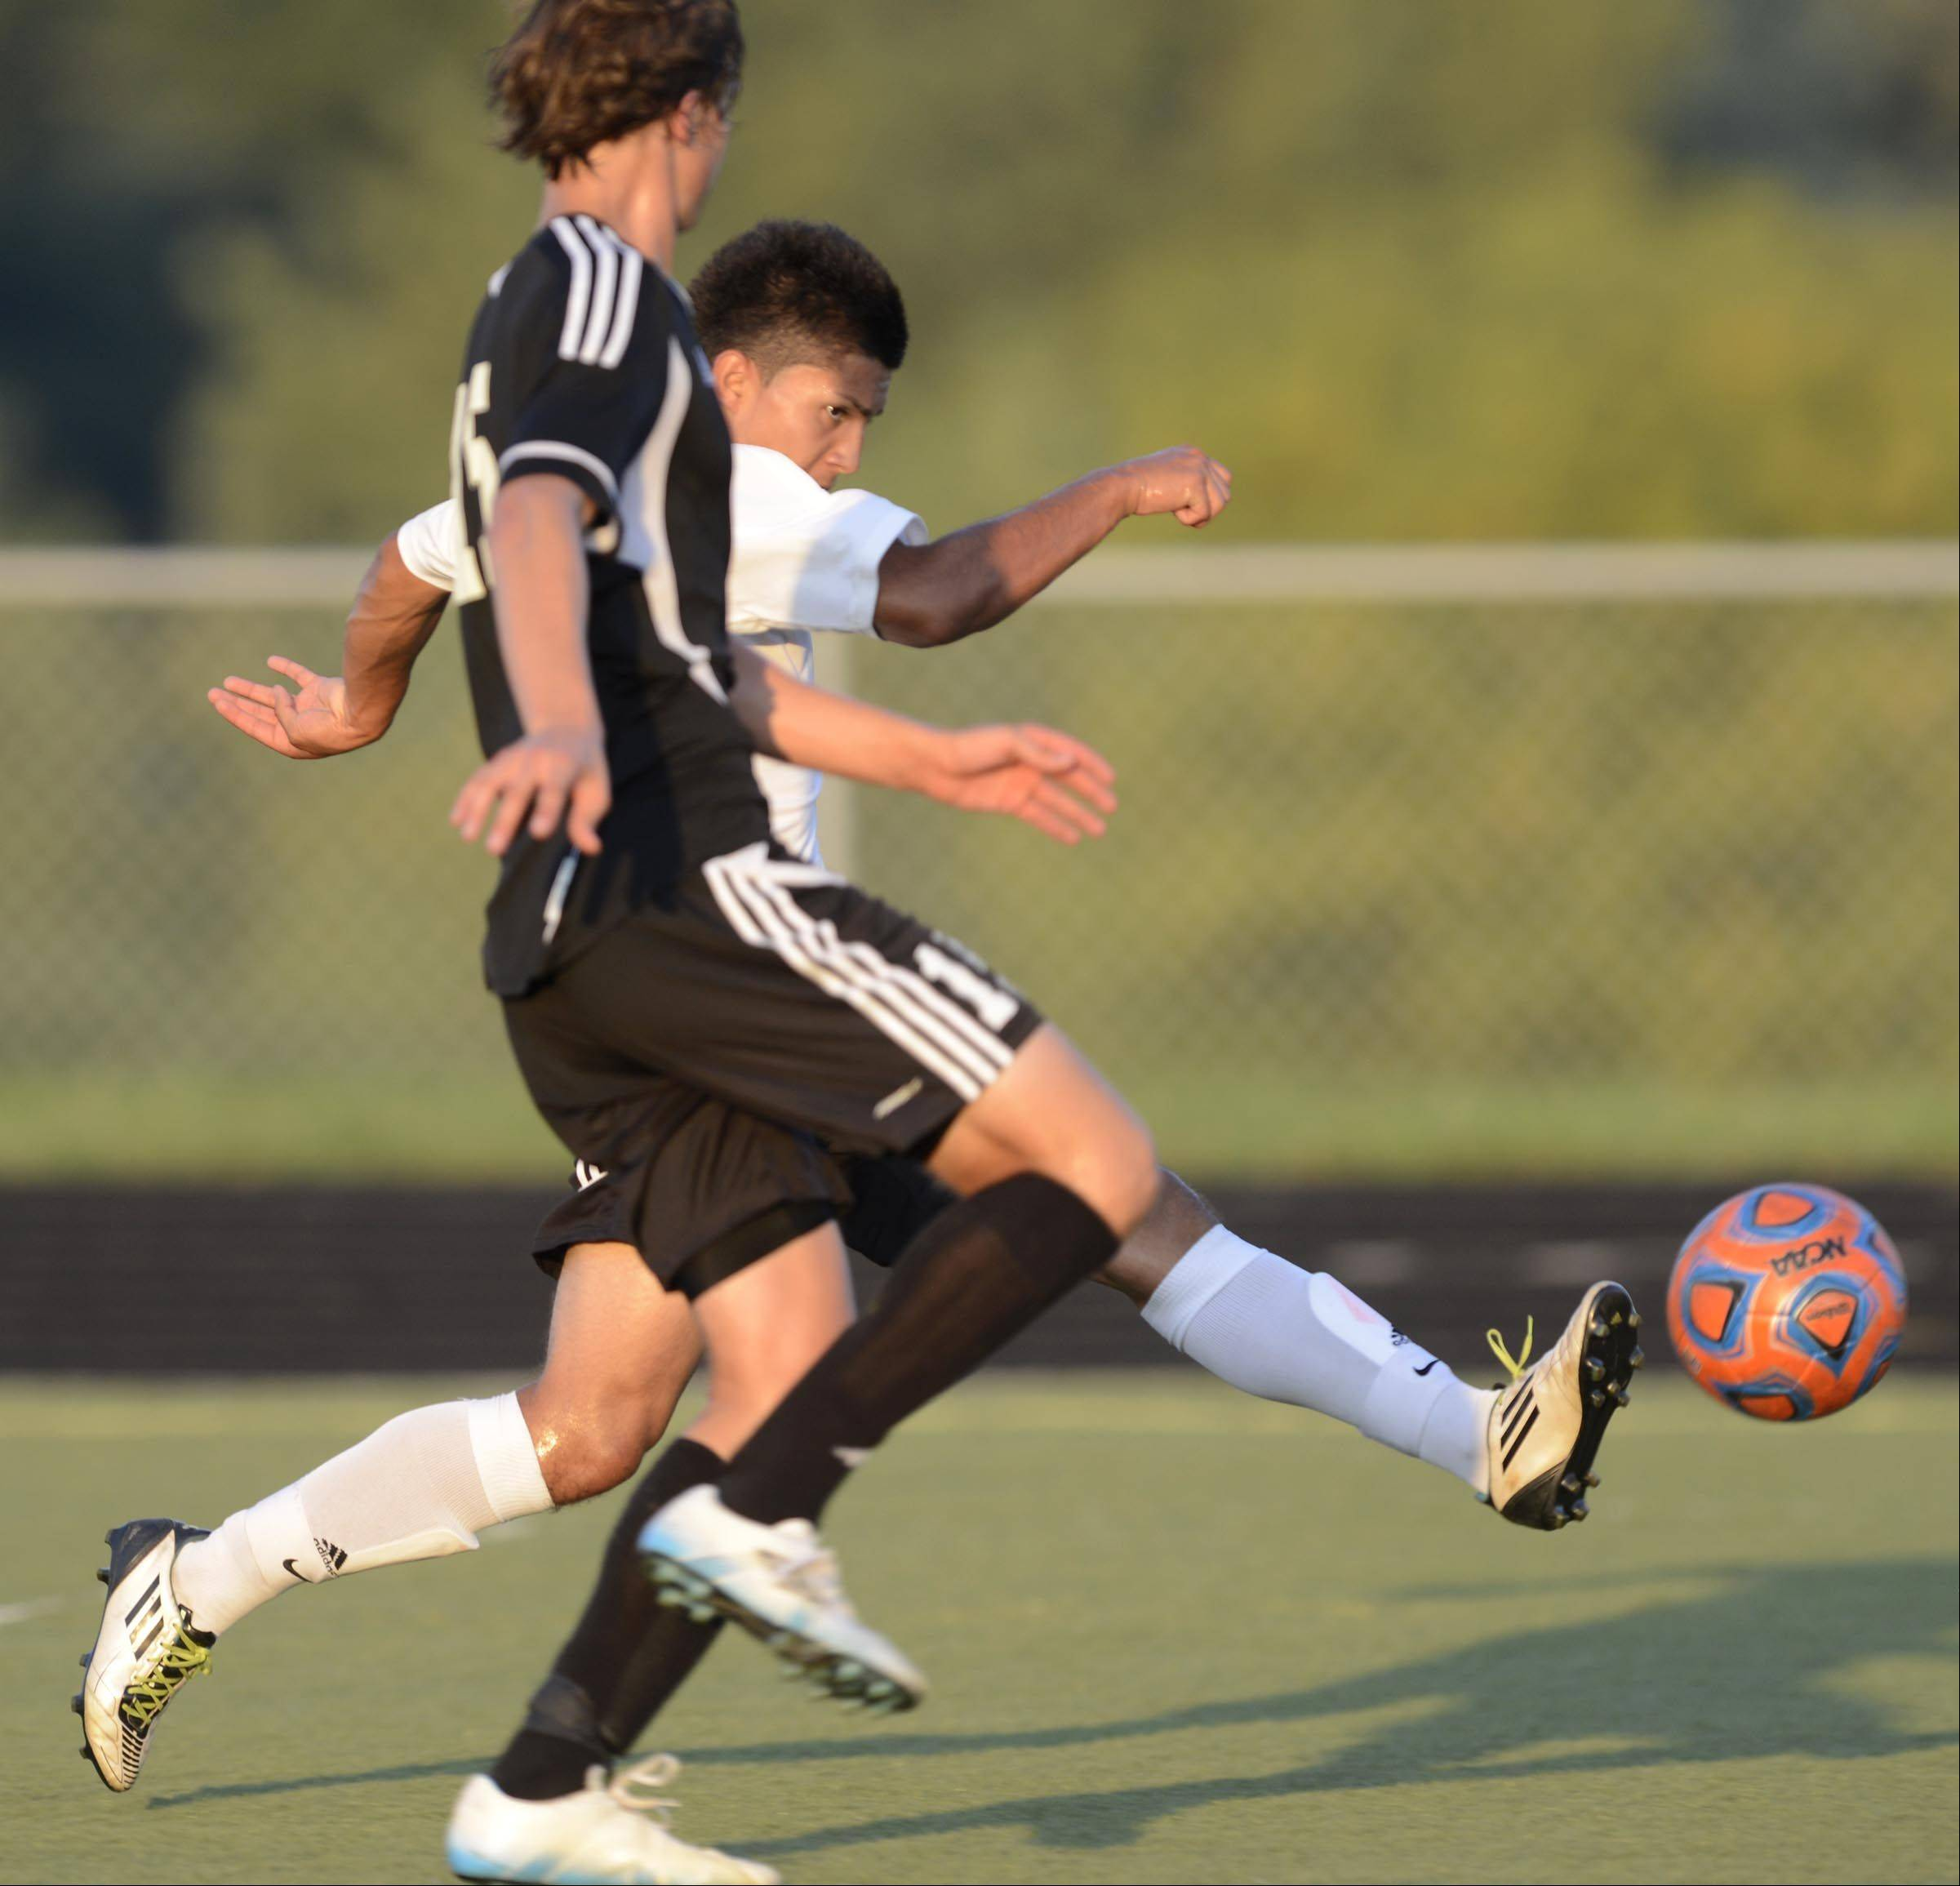 Streamwood's Julio Luna kicks the second goal of the game against Kaneland's Chris Van Dinther Monday in Streamwood.